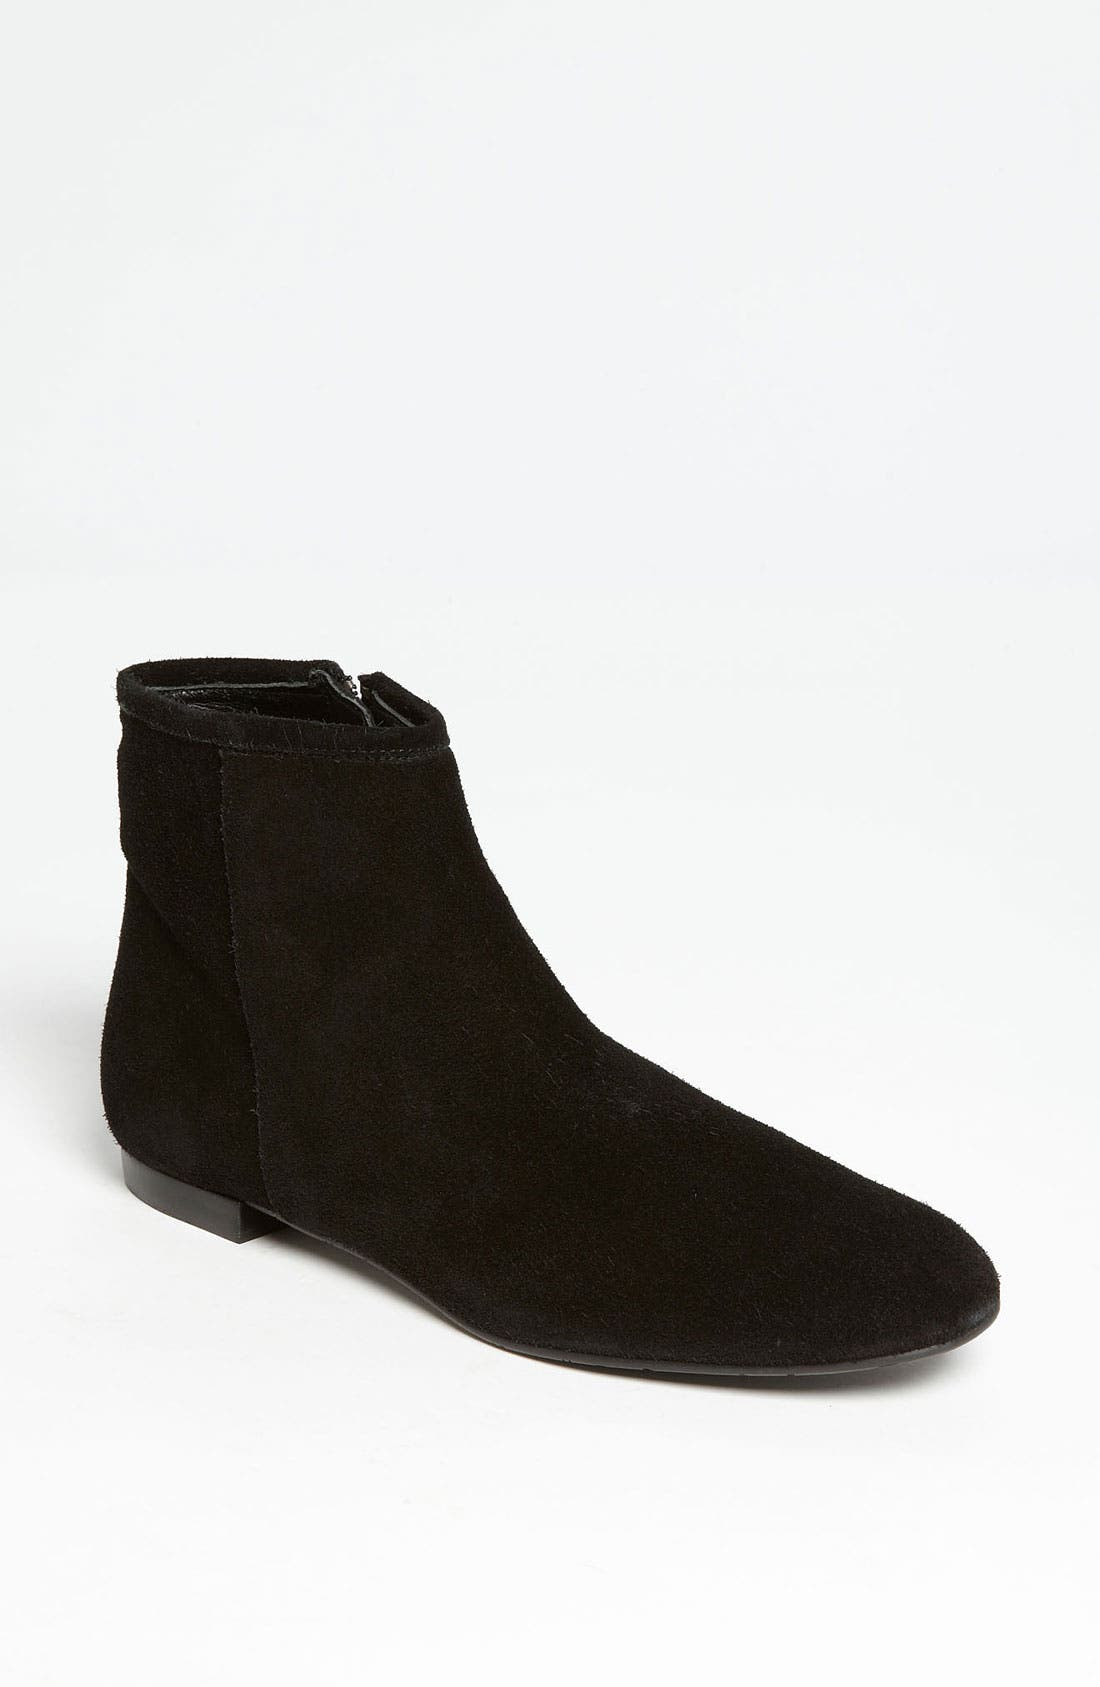 Alternate Image 1 Selected - Delman 'Mason' Boot (Online Only)